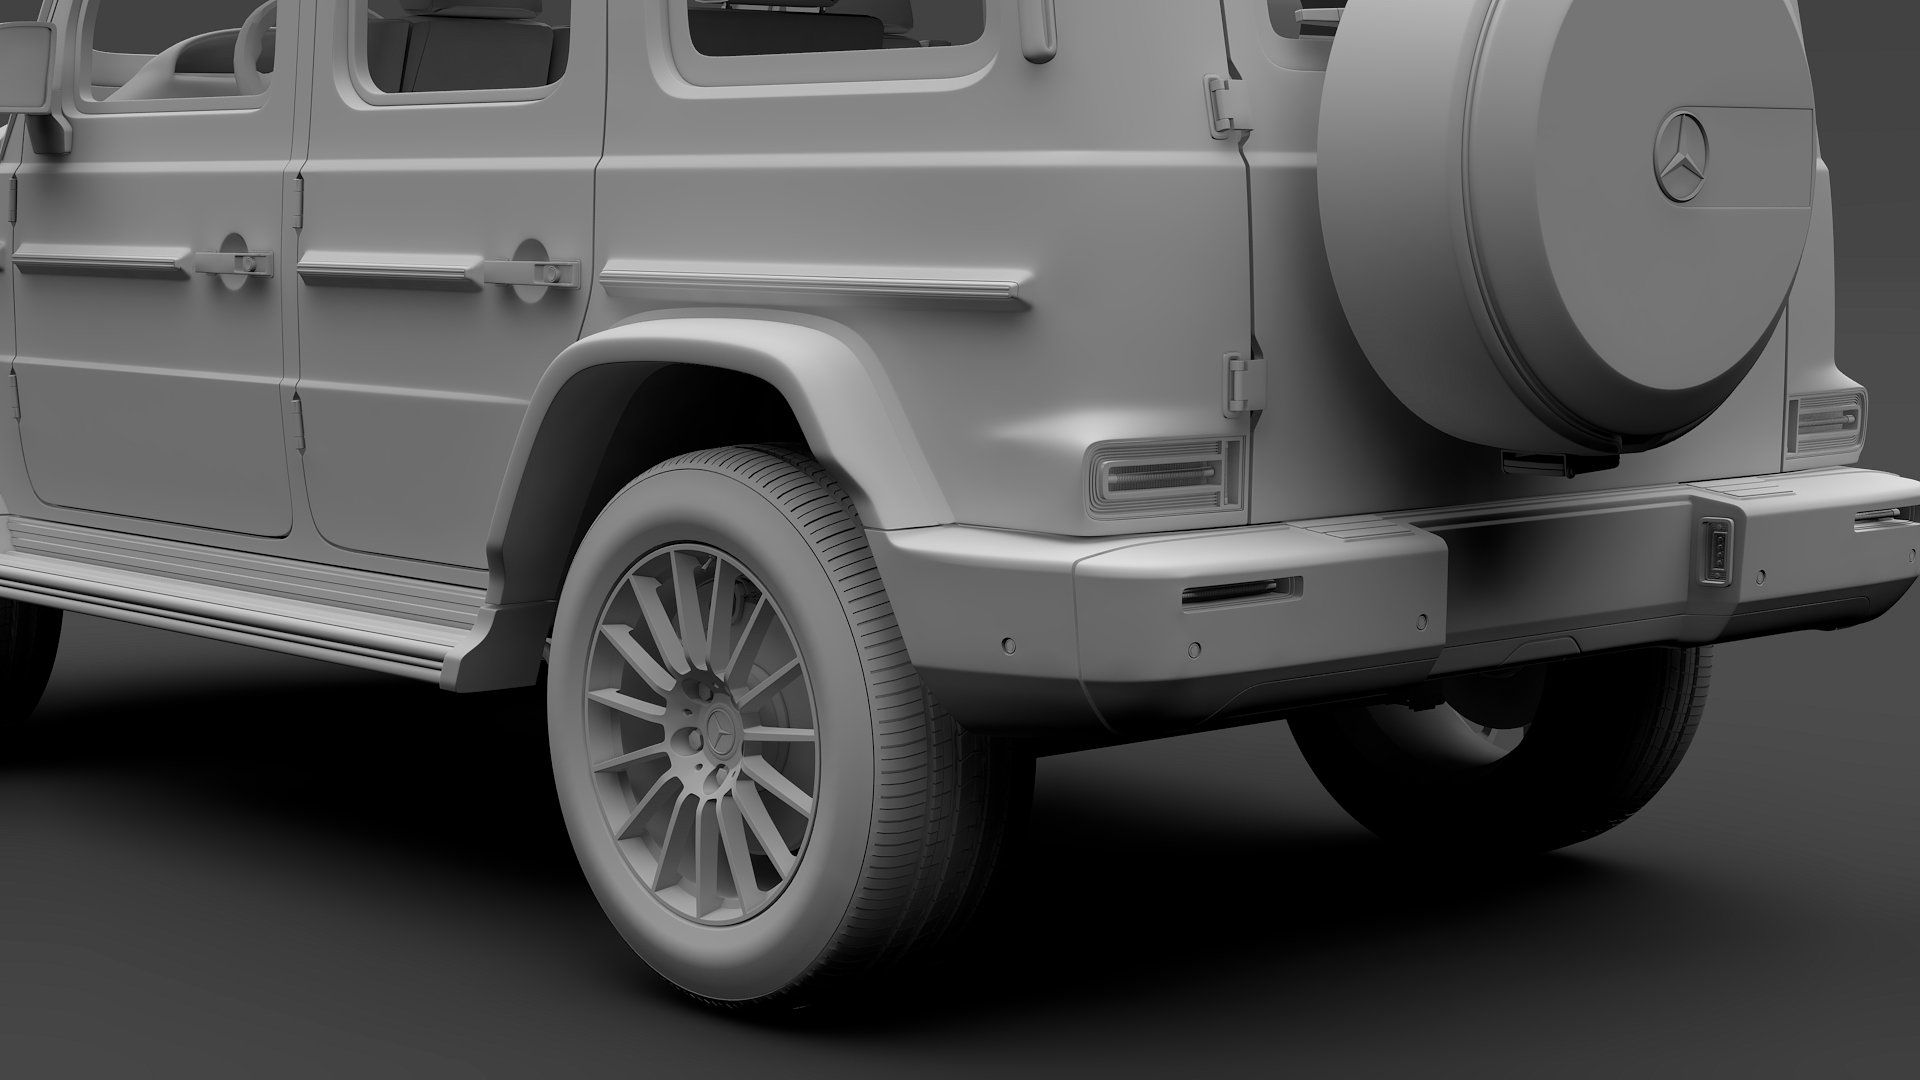 Mercedes Benz G 500 Night Packet W46 correctly materials named apply